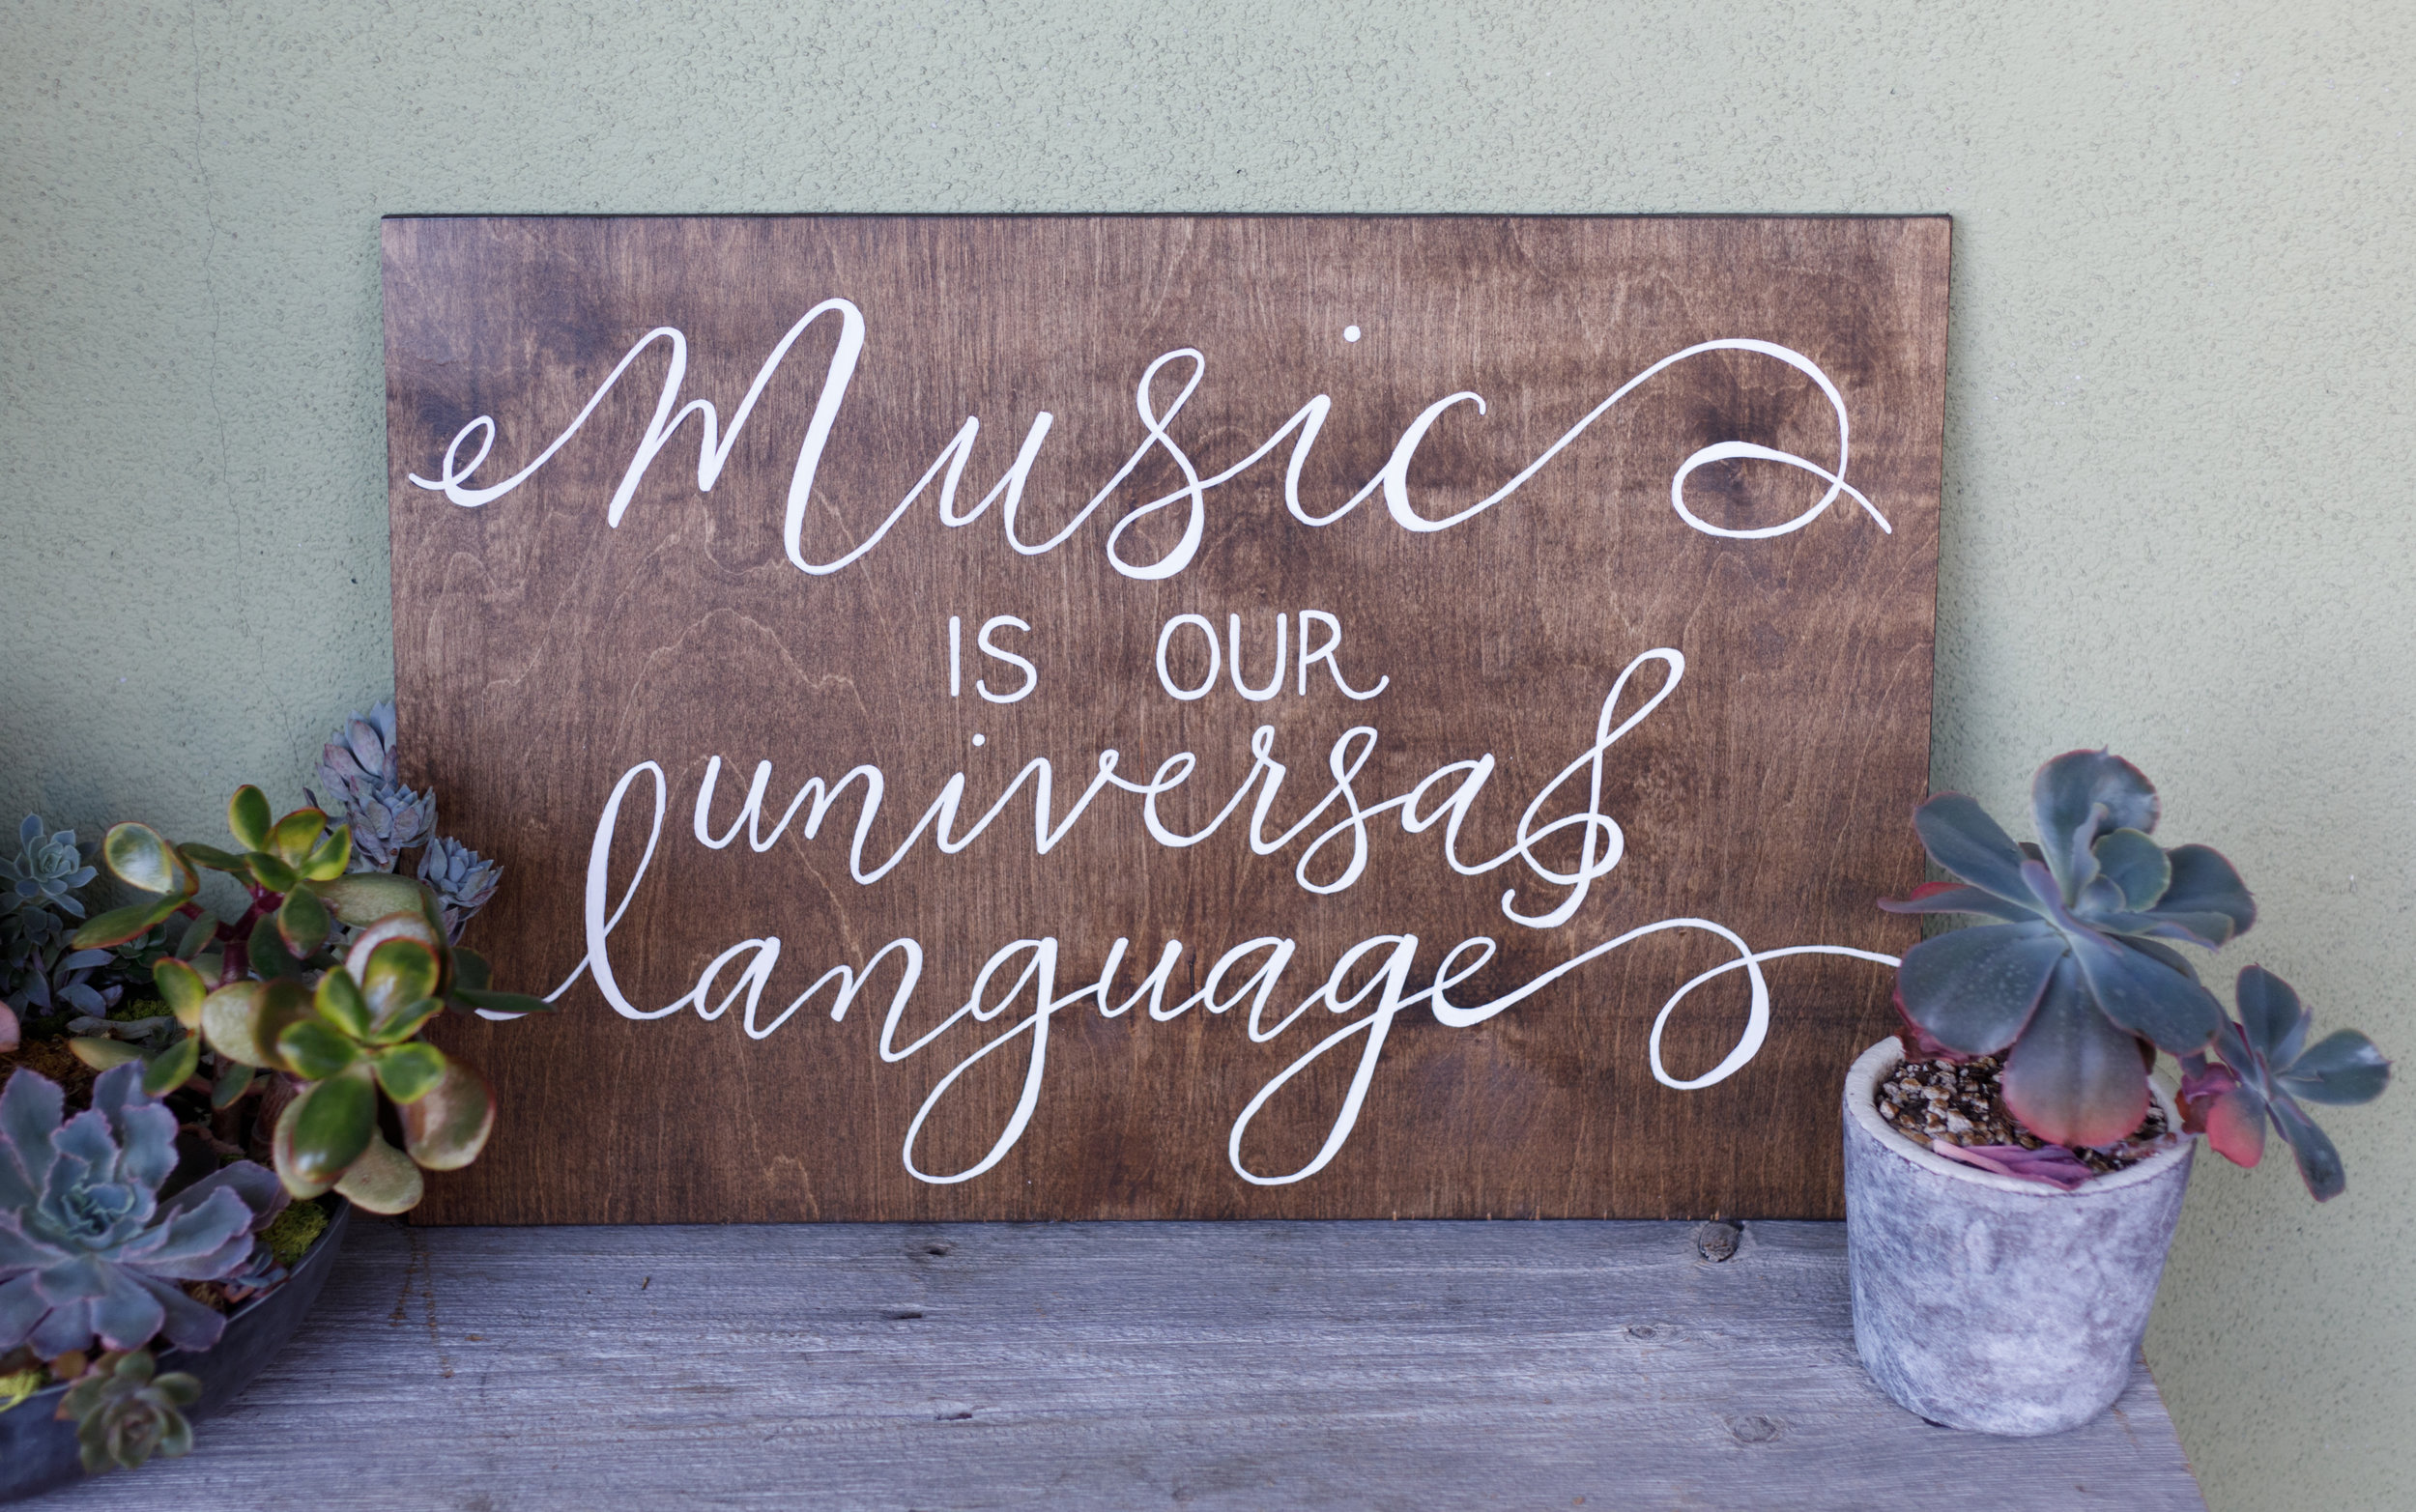 Beautiful custom calligraphy piece for the music lover's home or office